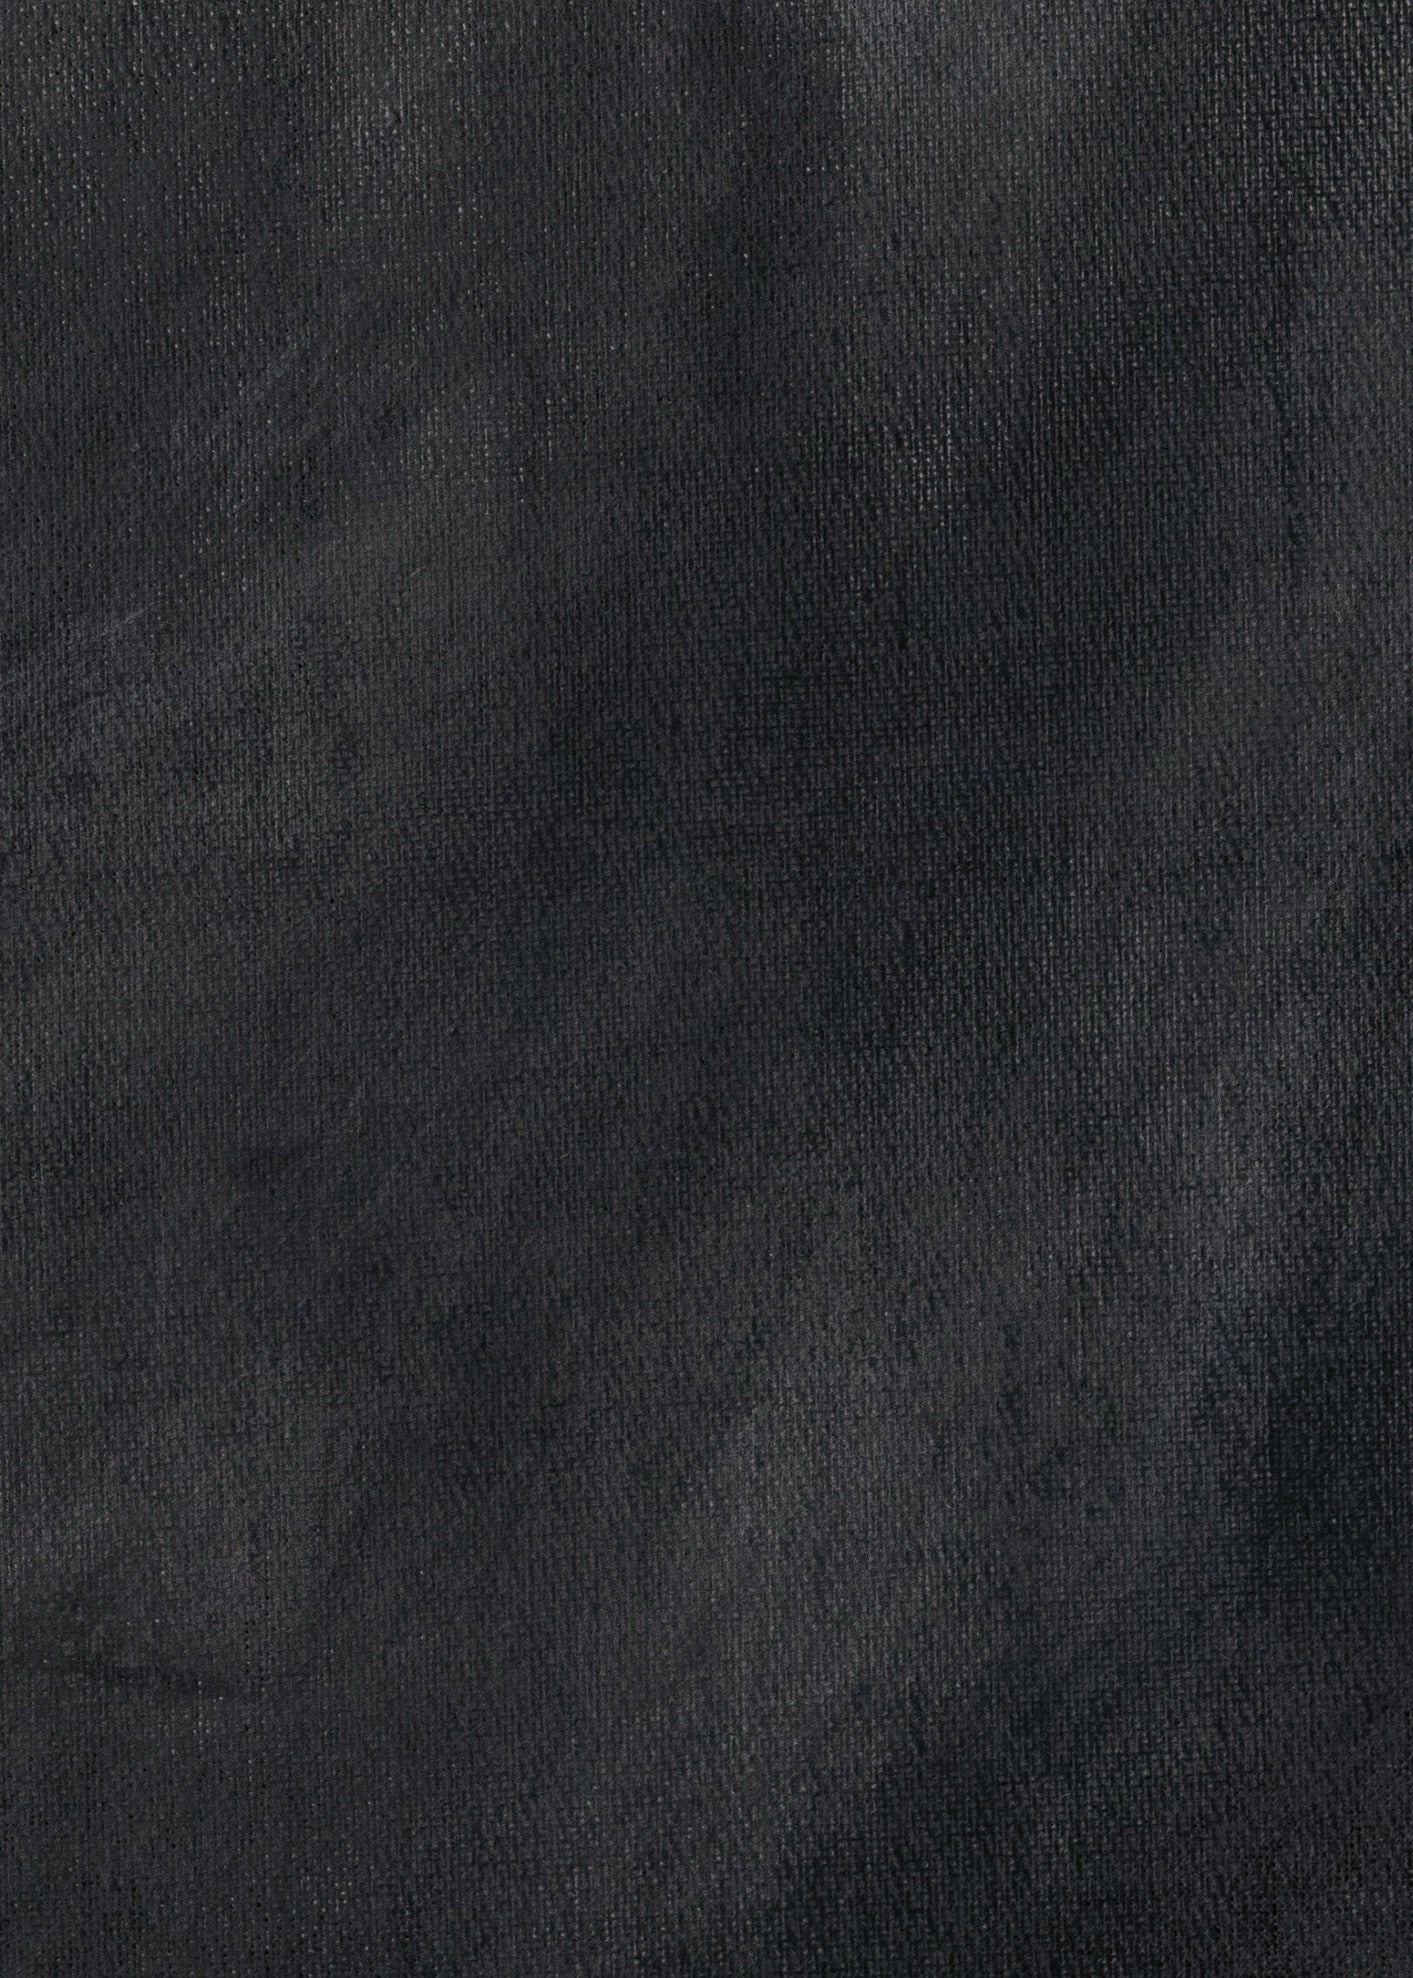 Charcoal Canvas Backdrop by Photography Backdrop Club